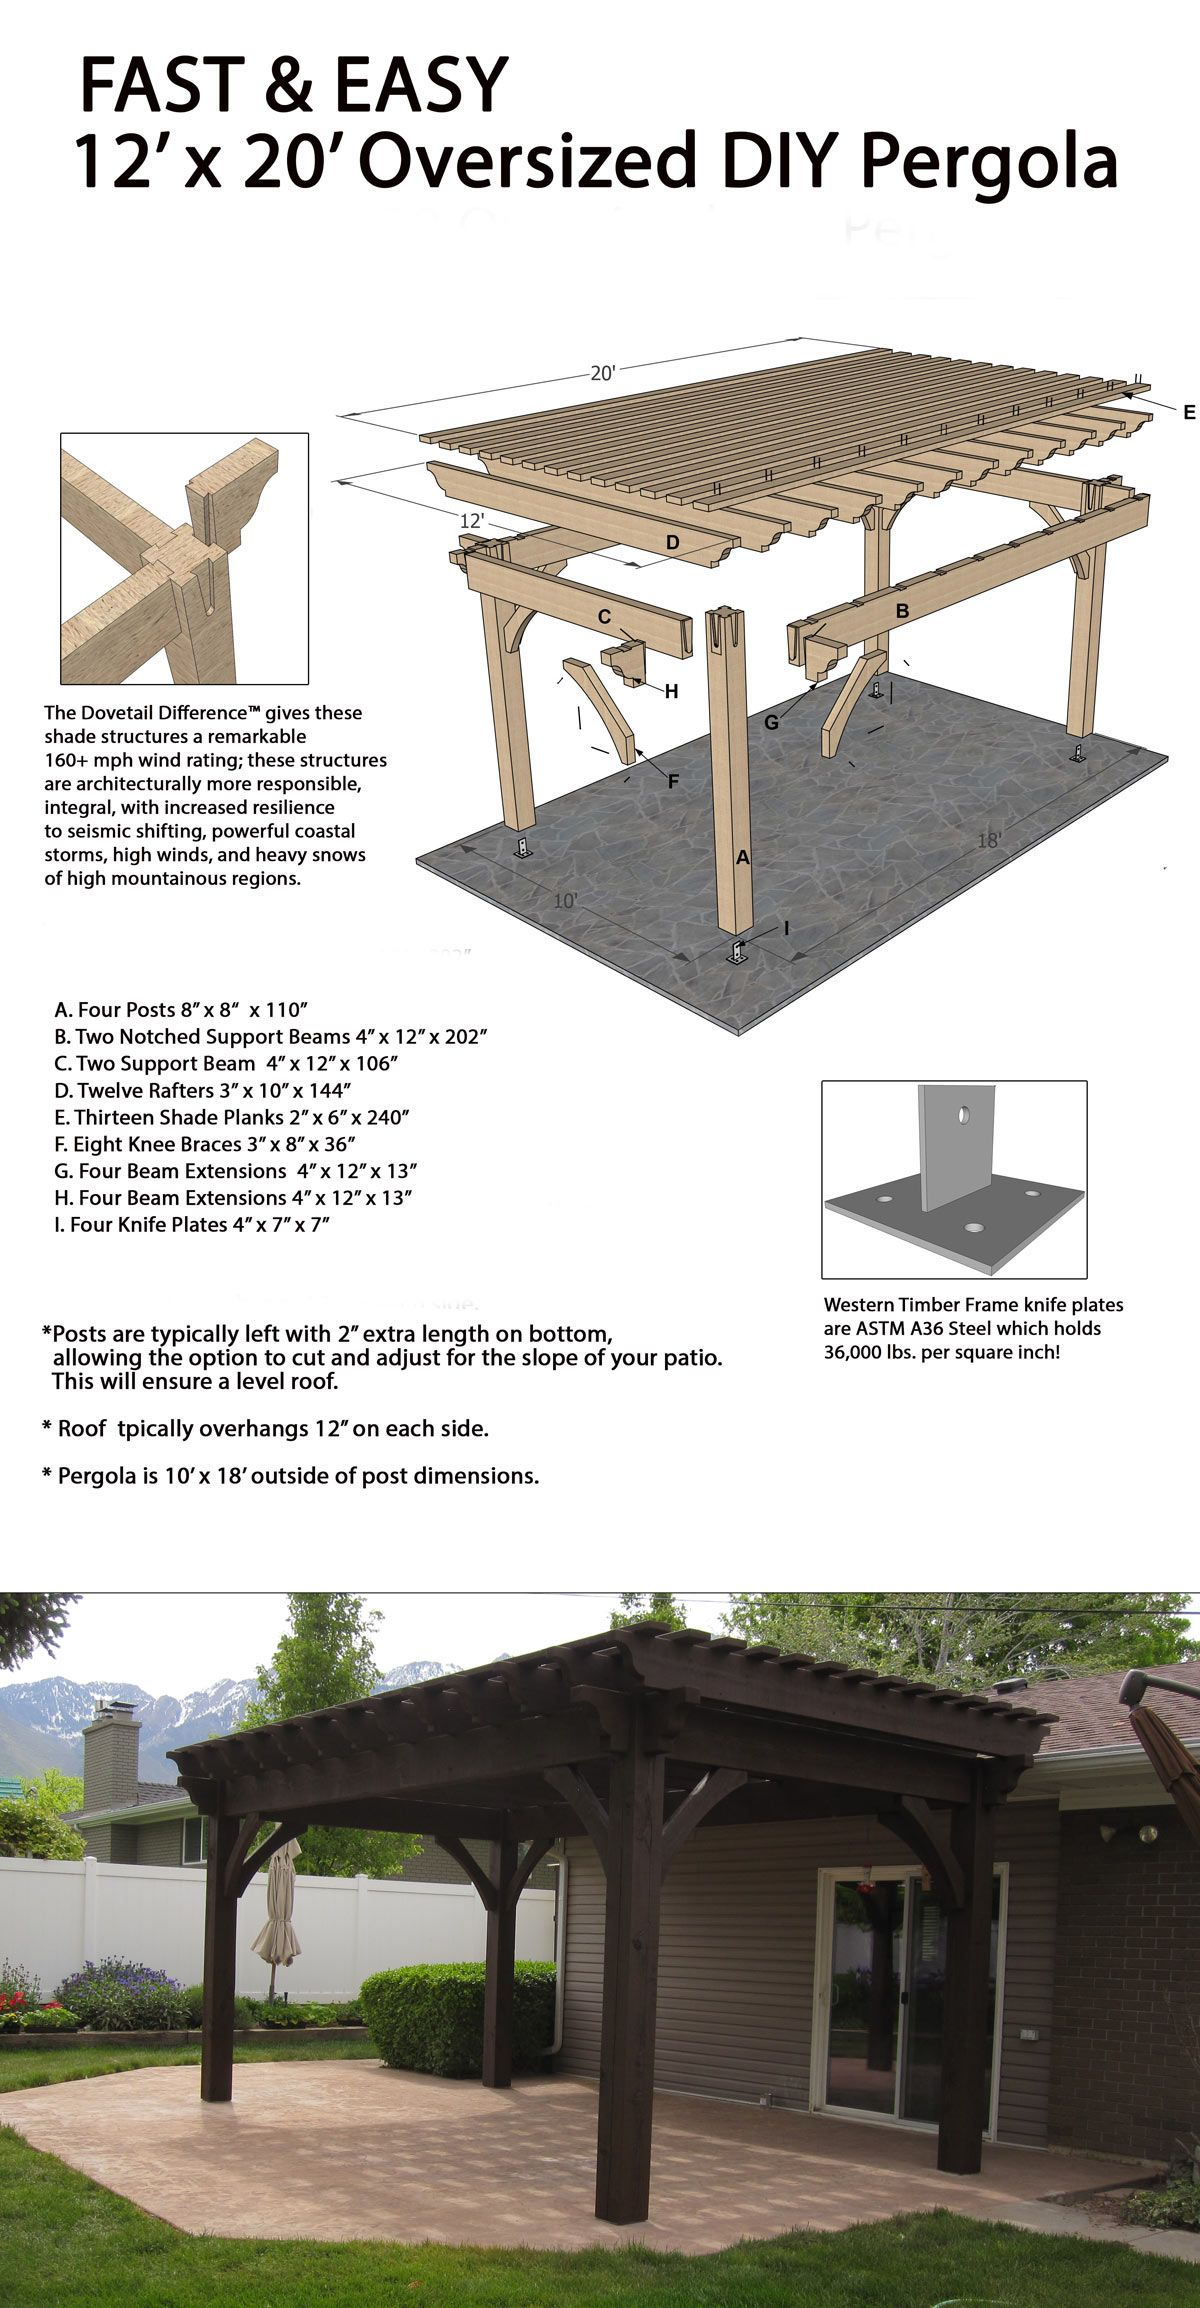 Easy, Fast DIY outdoor shade! Patio Pérgola, Techo De Patio, Cenador, - Easily Build A Fast DIY Beautiful Backyard Shade Structure Outdoor